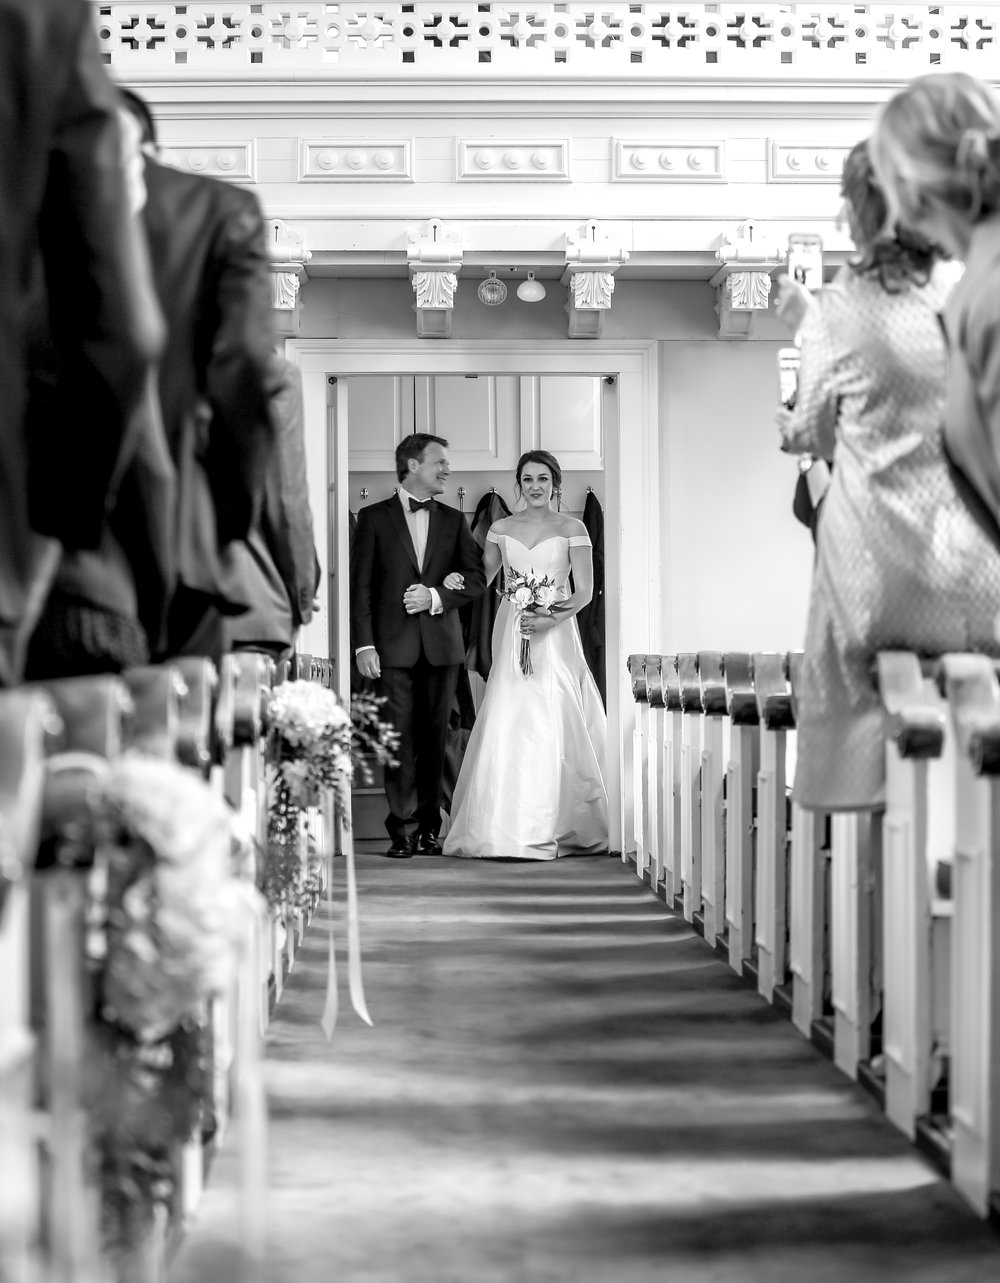 Jeremie_Barlow_Photography_Steffen_Sudyam_wedding_2018-441.jpg